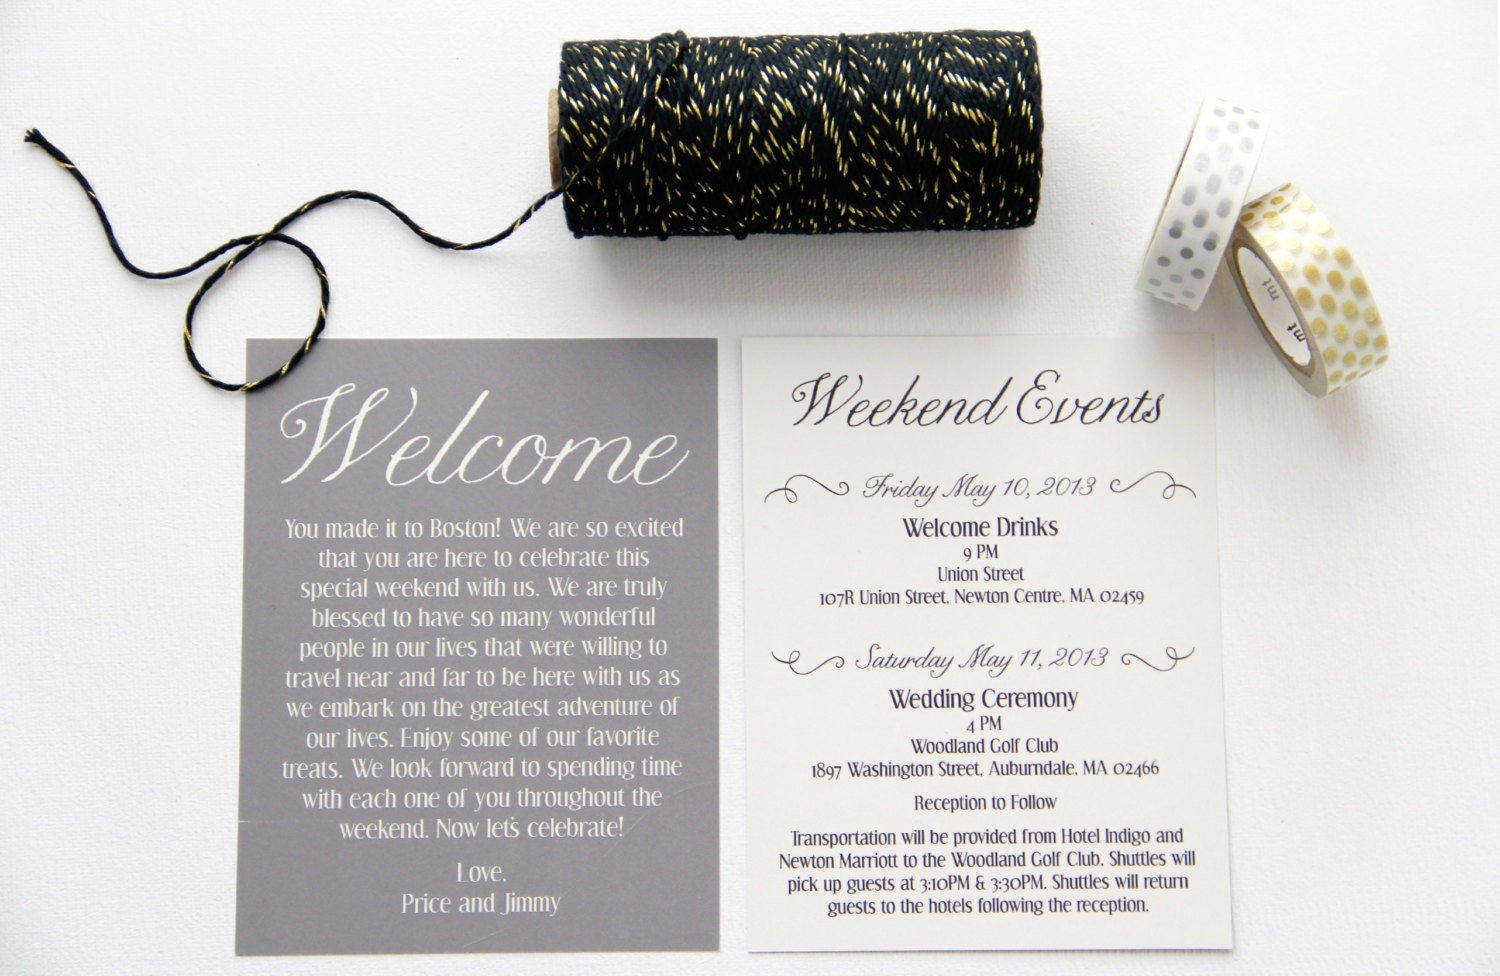 wedding welcome cards - Daway.dabrowa.co